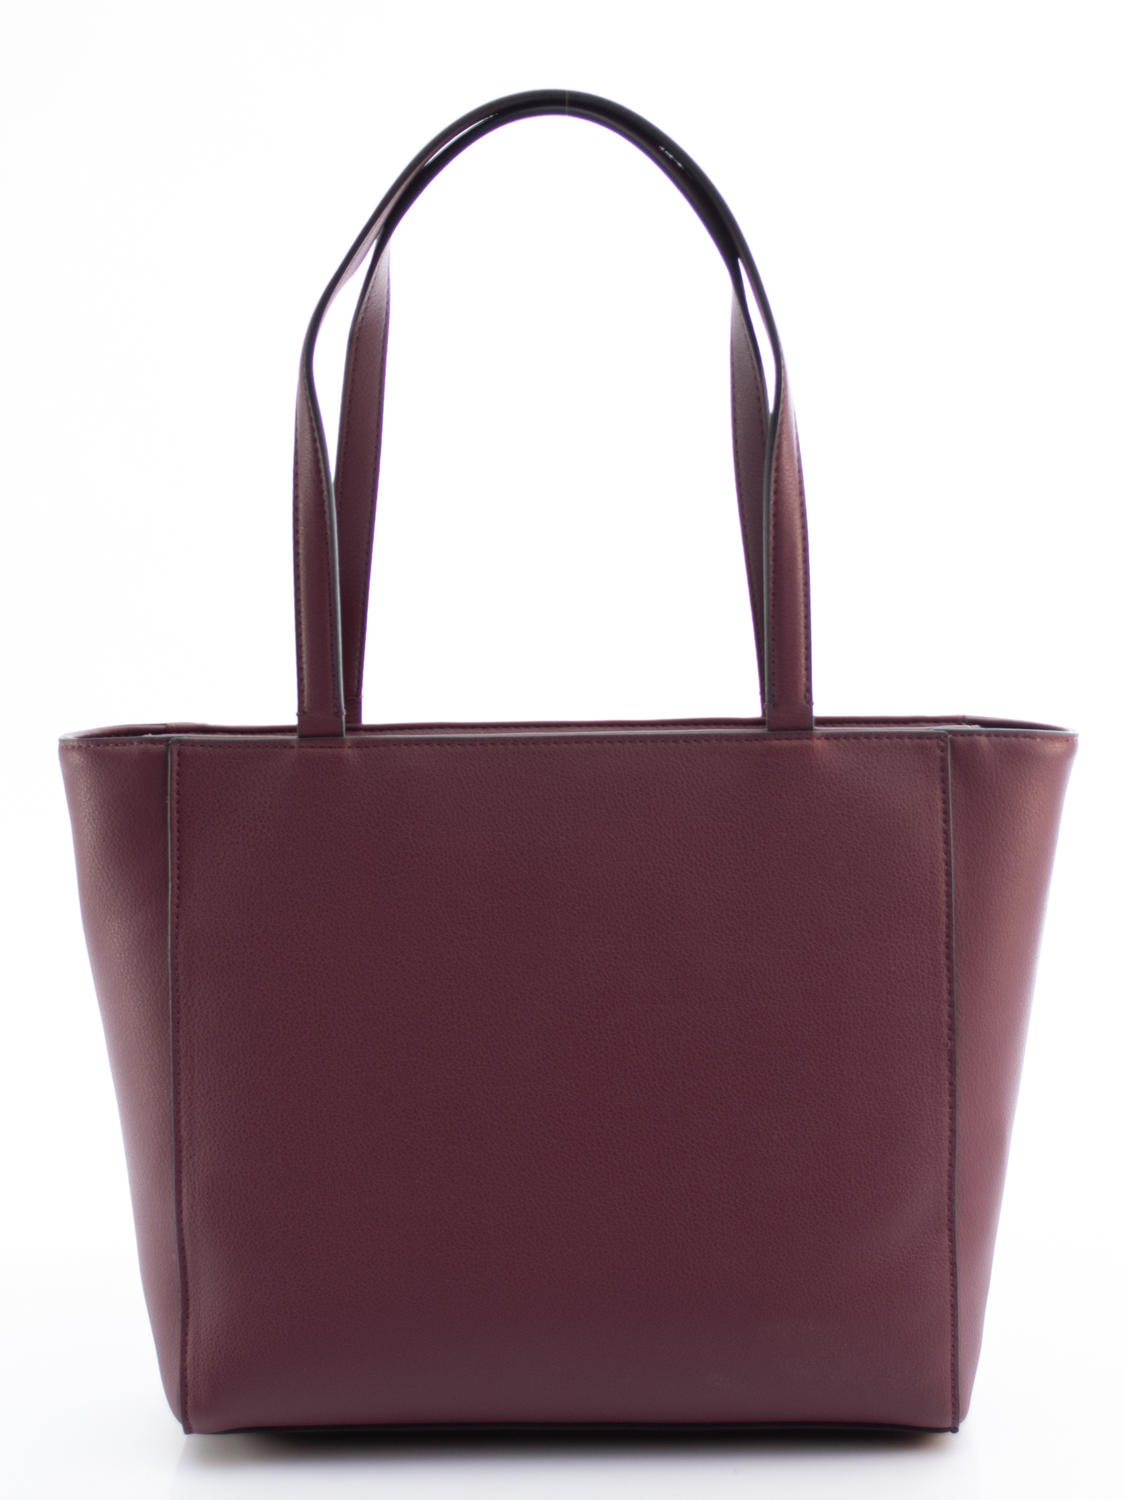 Borse Donna -  Shopping bag a spalla